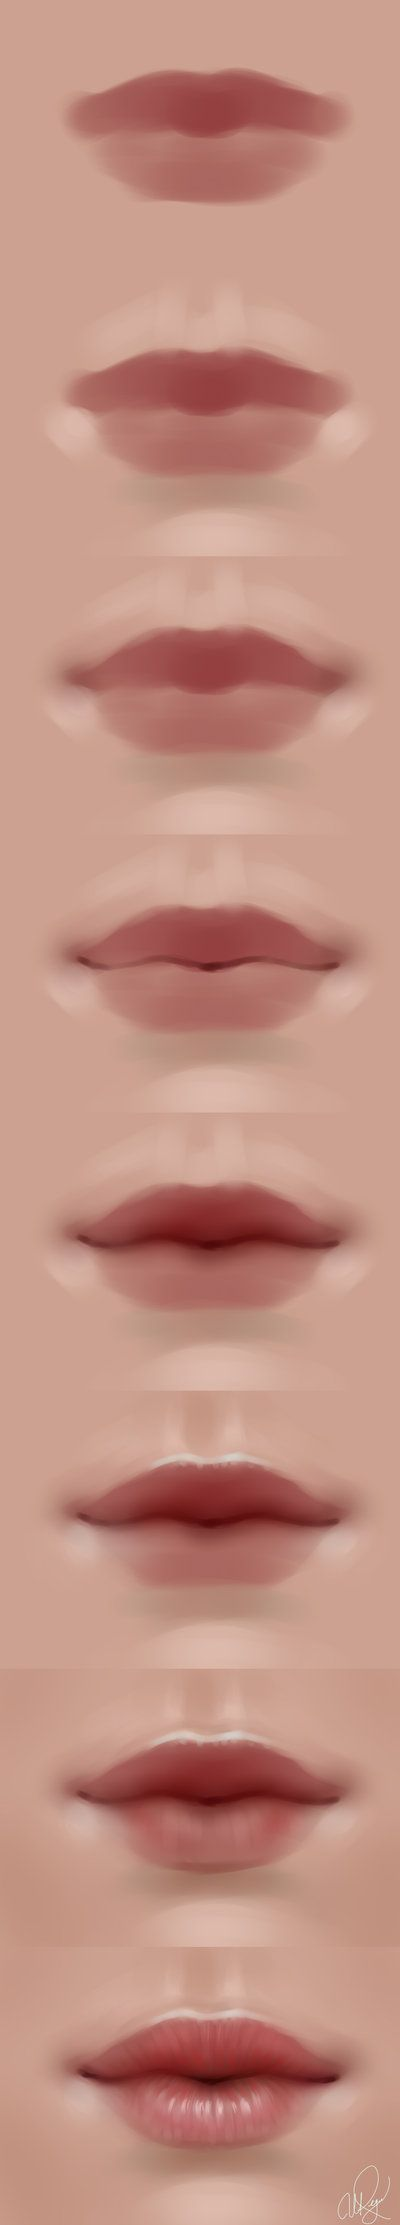 "...before you freak out, it's a step by step assist for artists re lips, but it'll hook you up to the site for everything else you might want or need. :) ""lips walkthrough [dA]"""